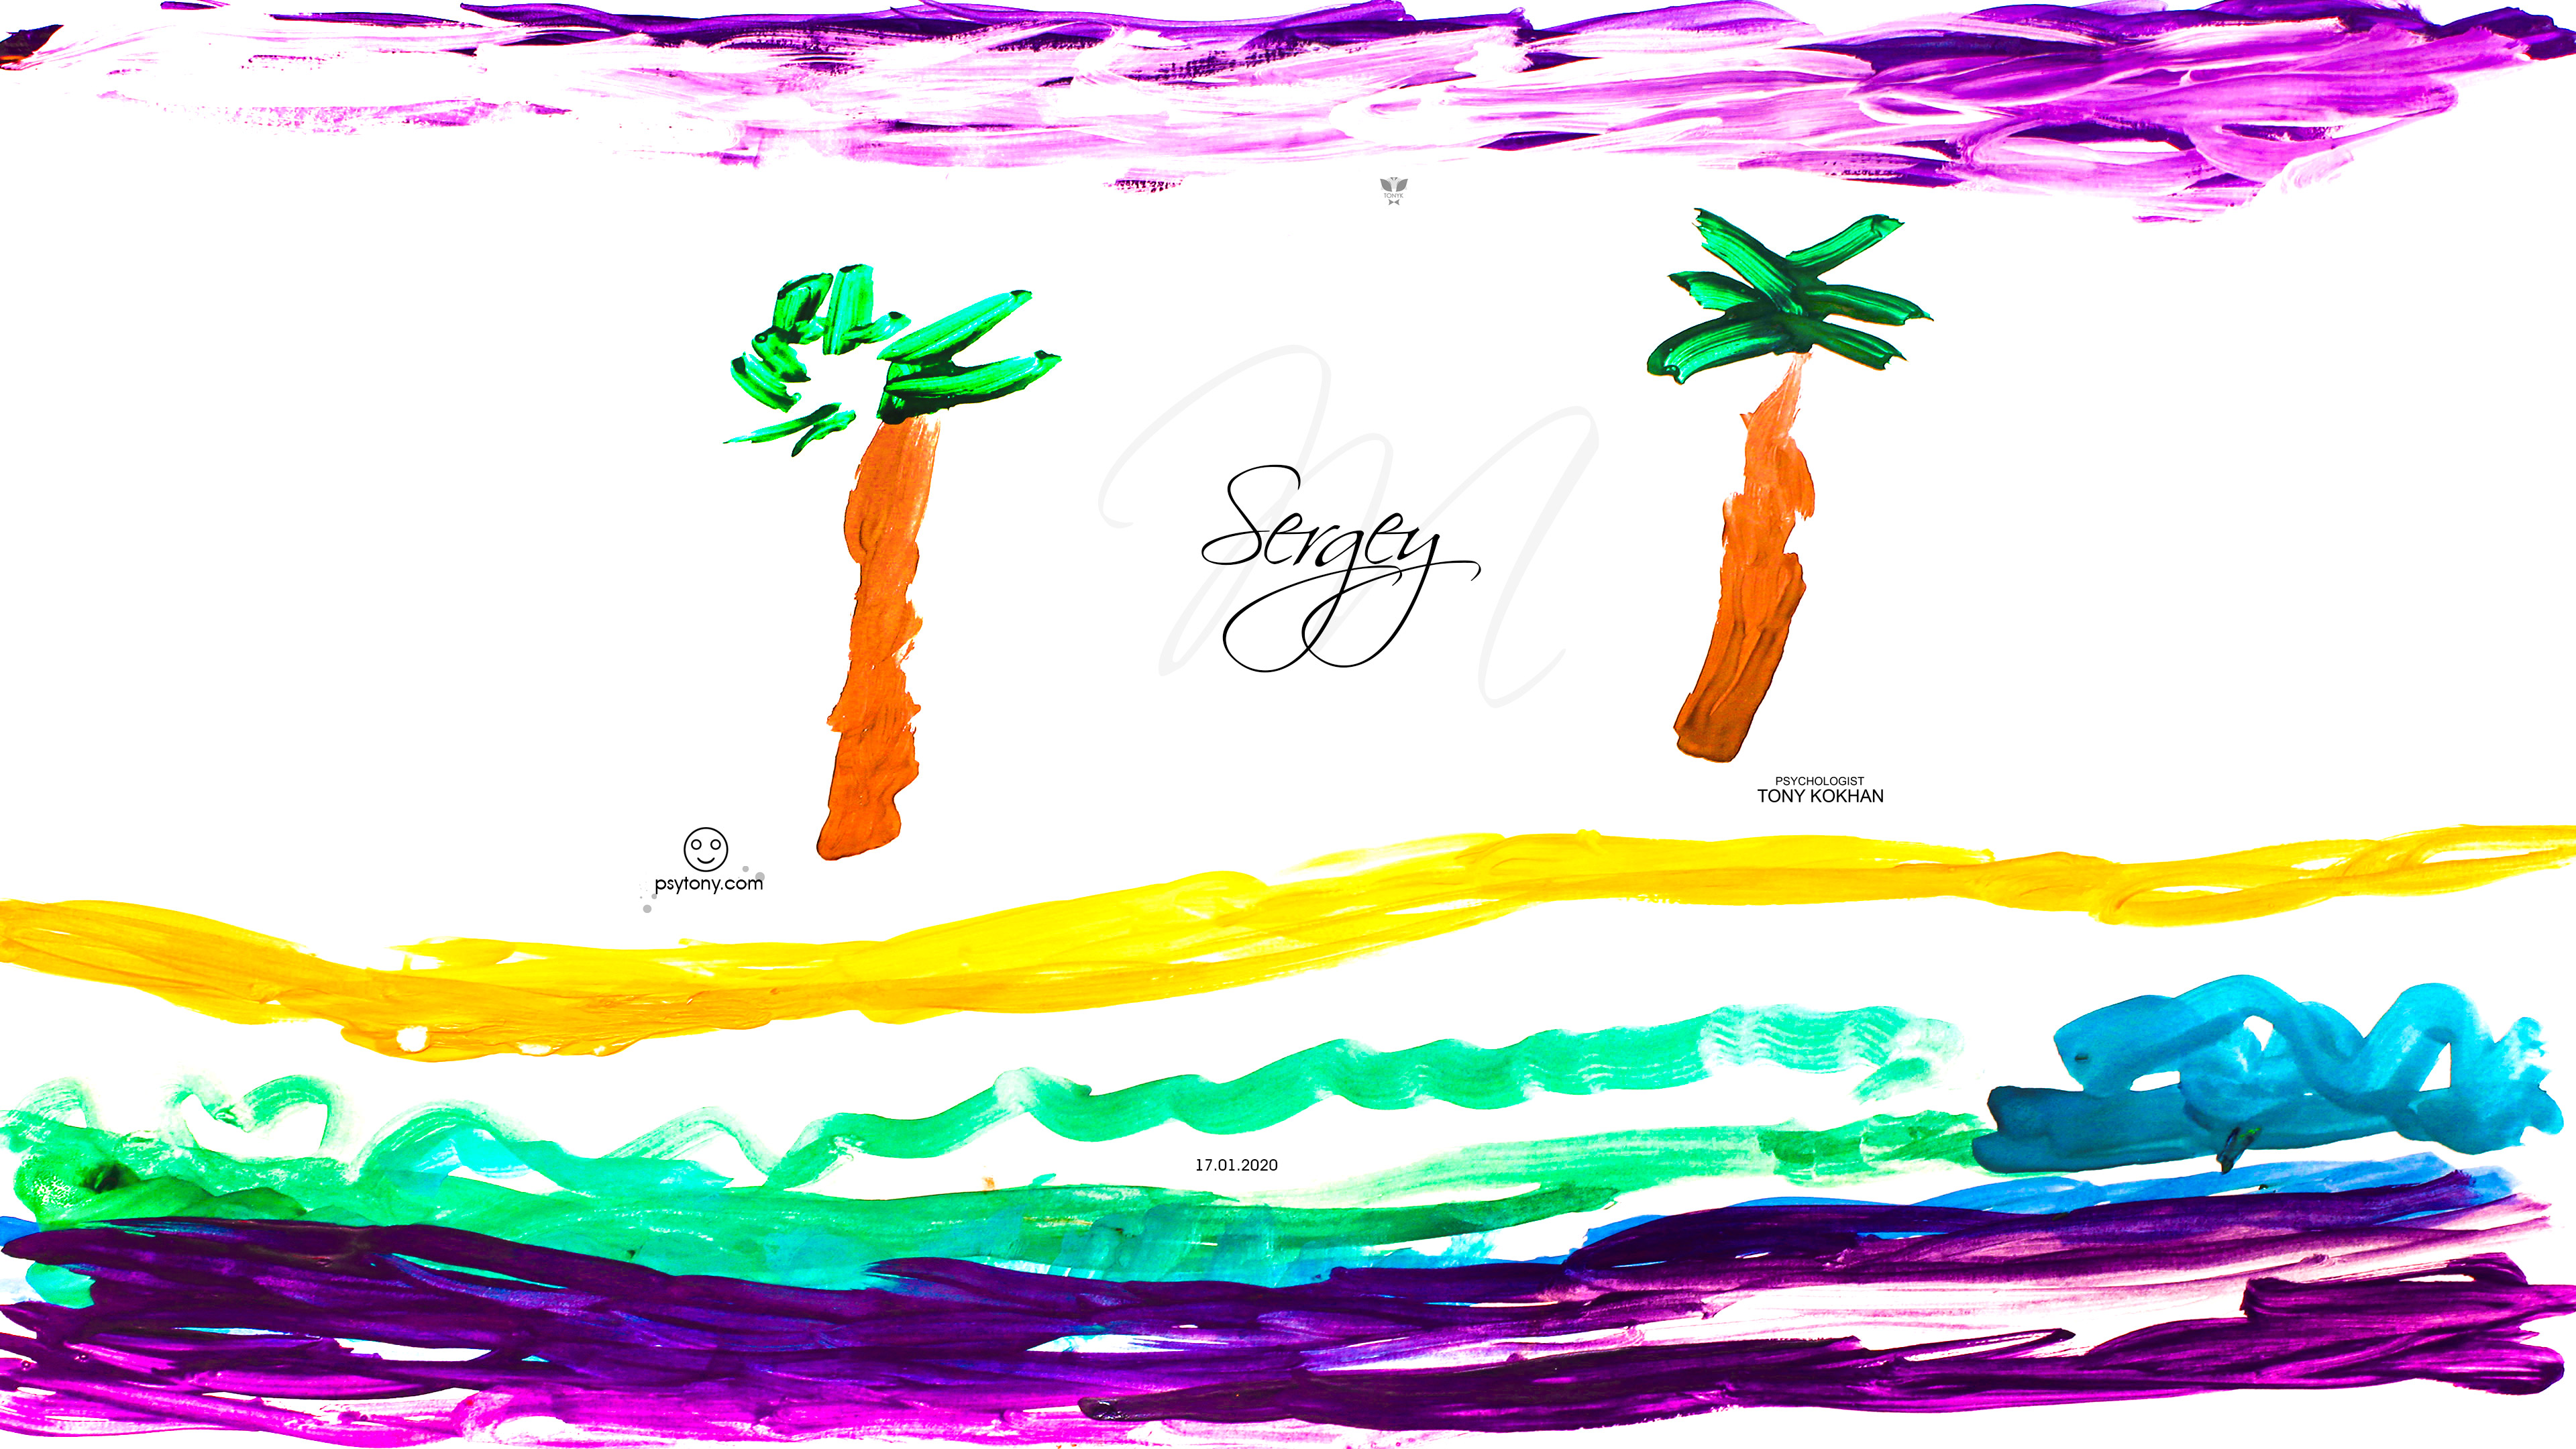 Sergey-Soul-Boy-Nature-Palm-Trees-Sea-Waves-Sky-Sand-Picture-Gouache-Art-2020-Multicolors-4K-Wallpapers-by-Psychologist-Tony-Kokhan-www.psytony.com-image